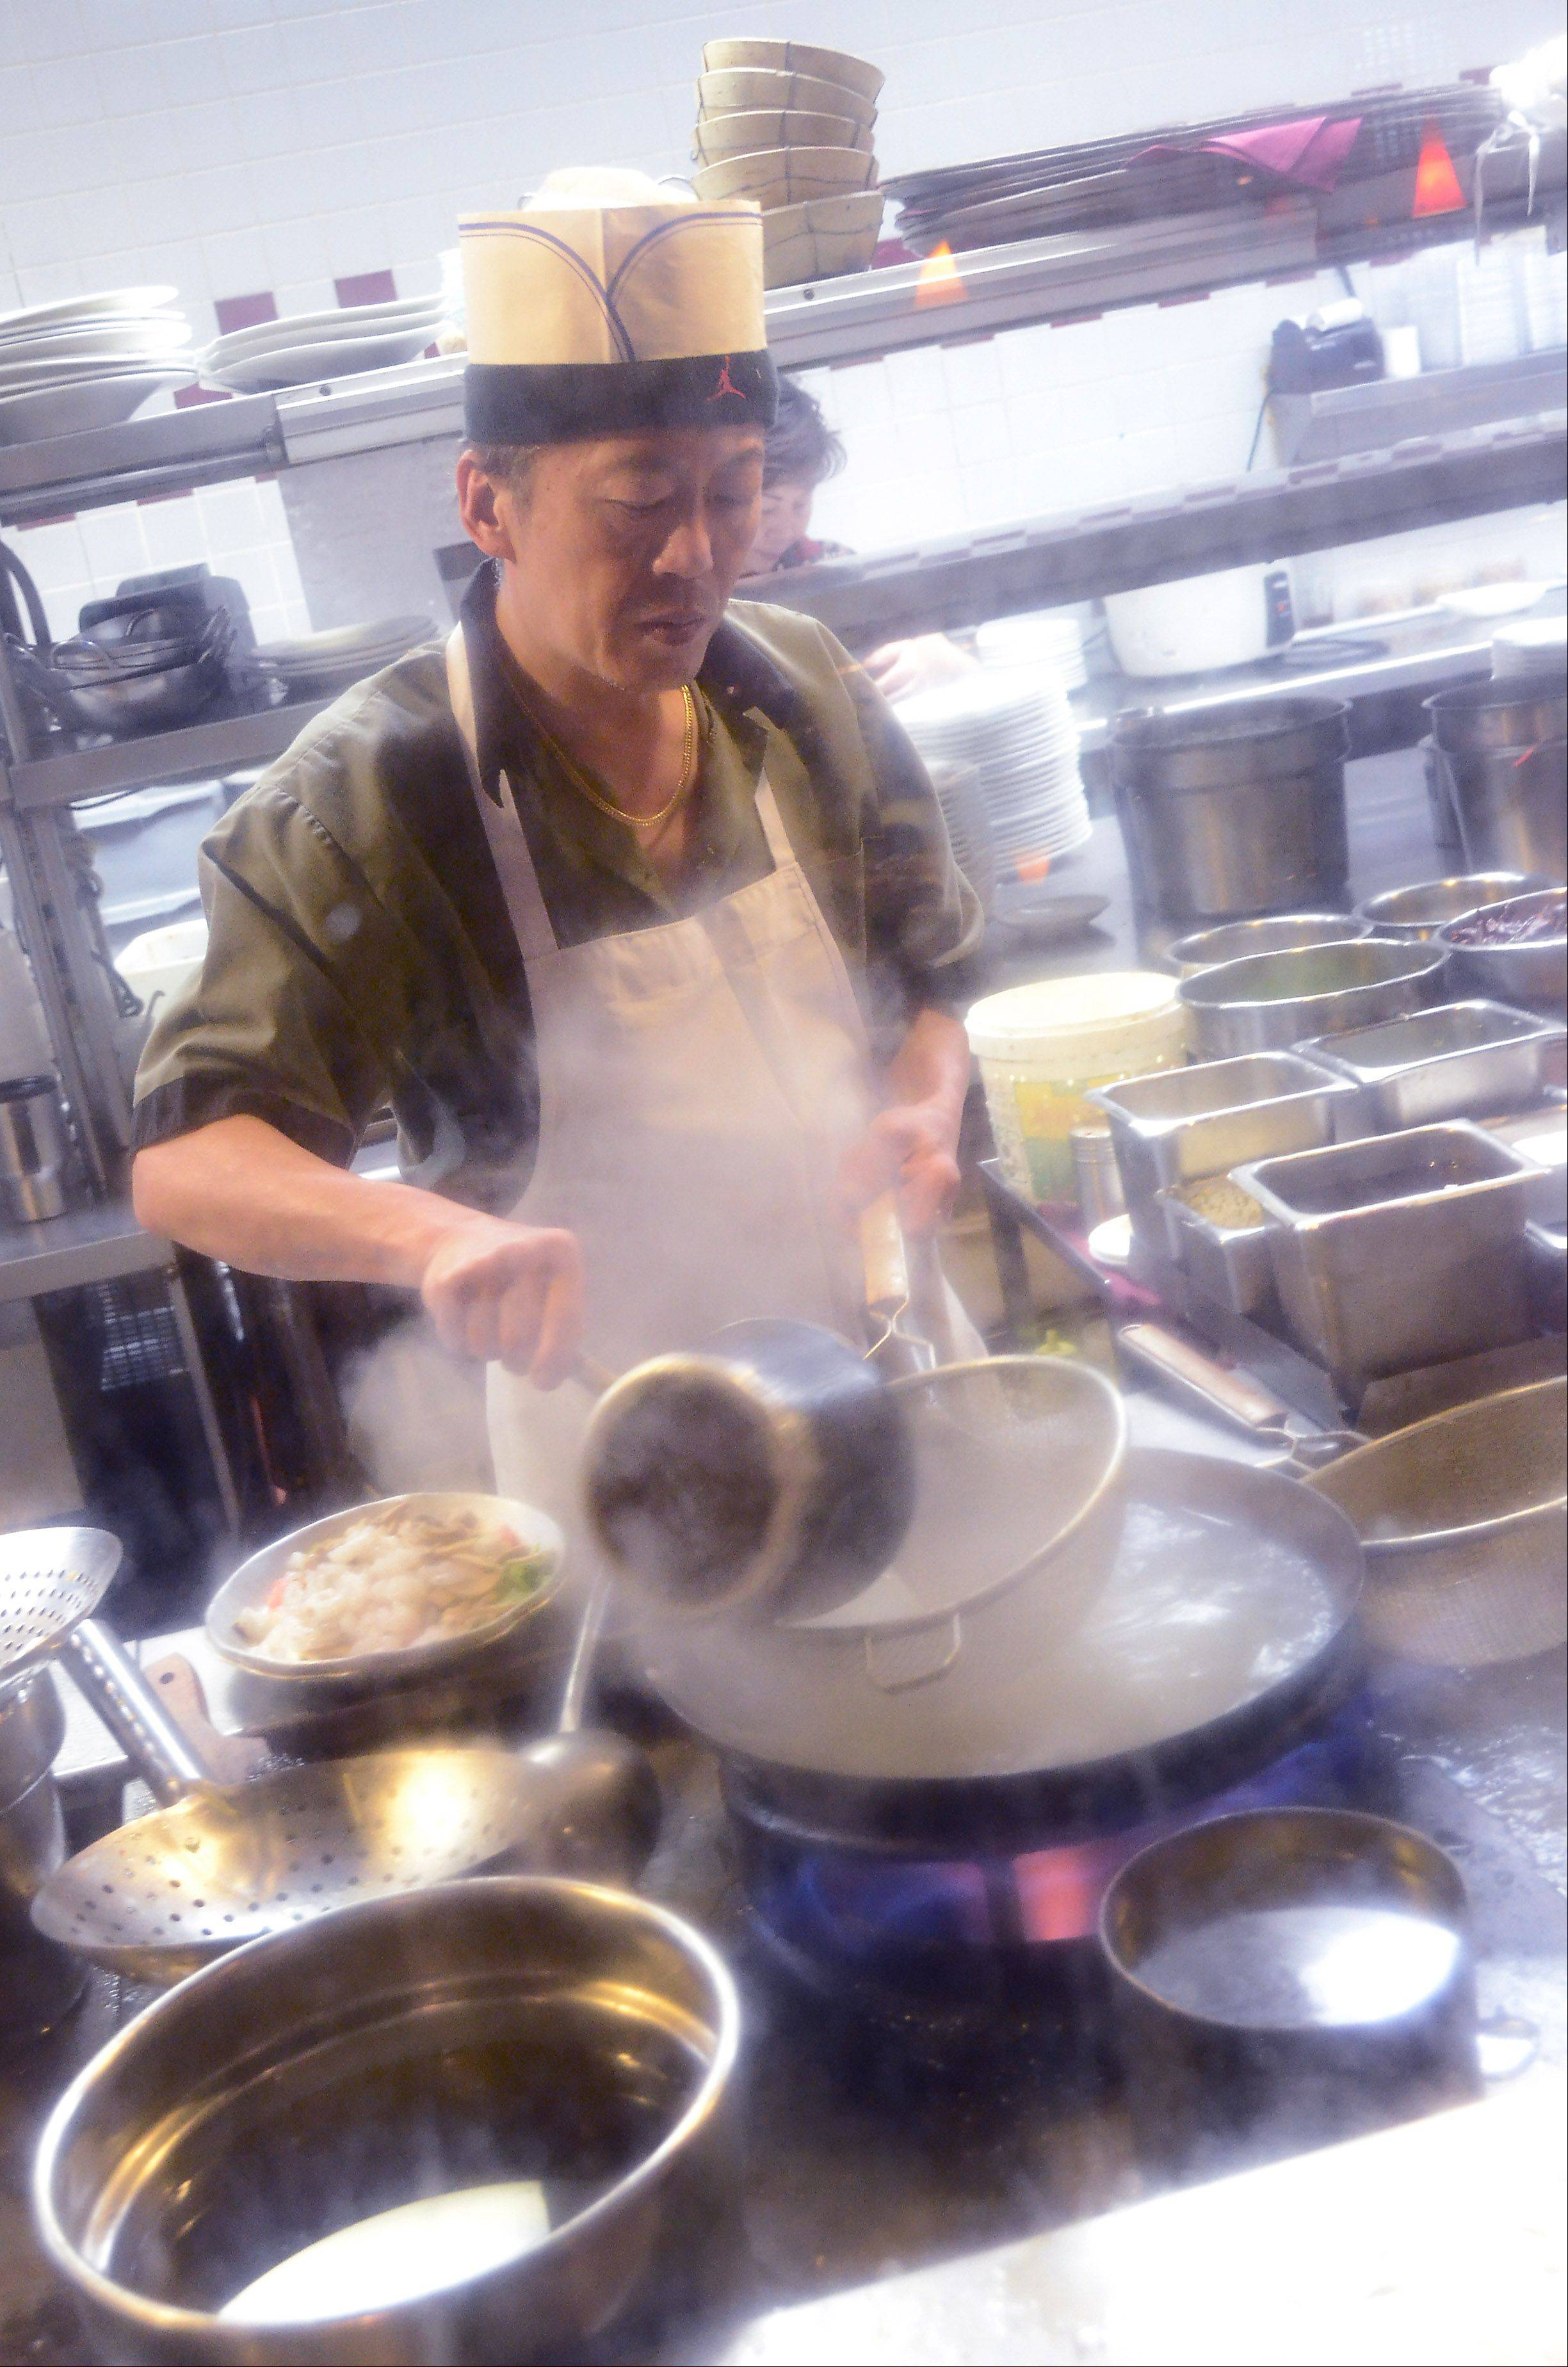 Diners at Yu's Mandarin can peer into the kitchen and watch chefs prepare their meal.